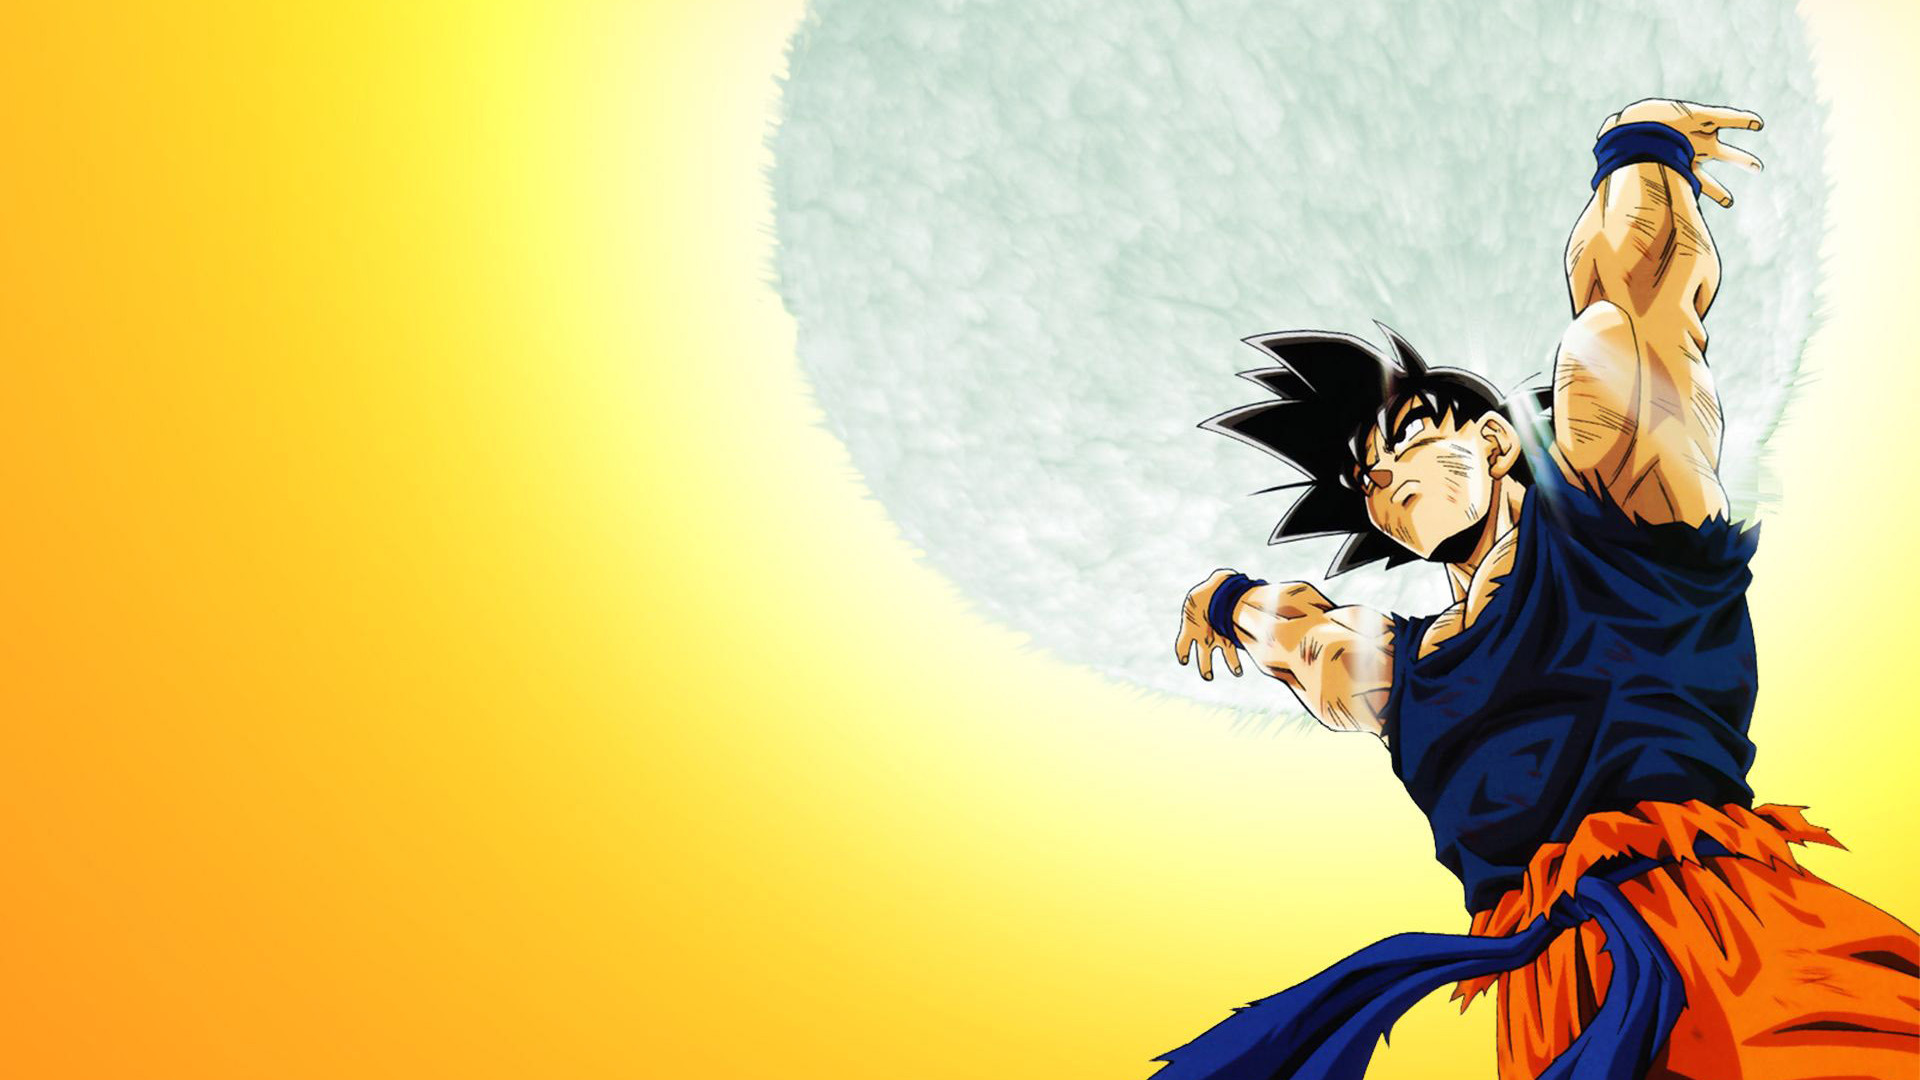 Dragon Ball Z   Goku wallpaper 1920x1080